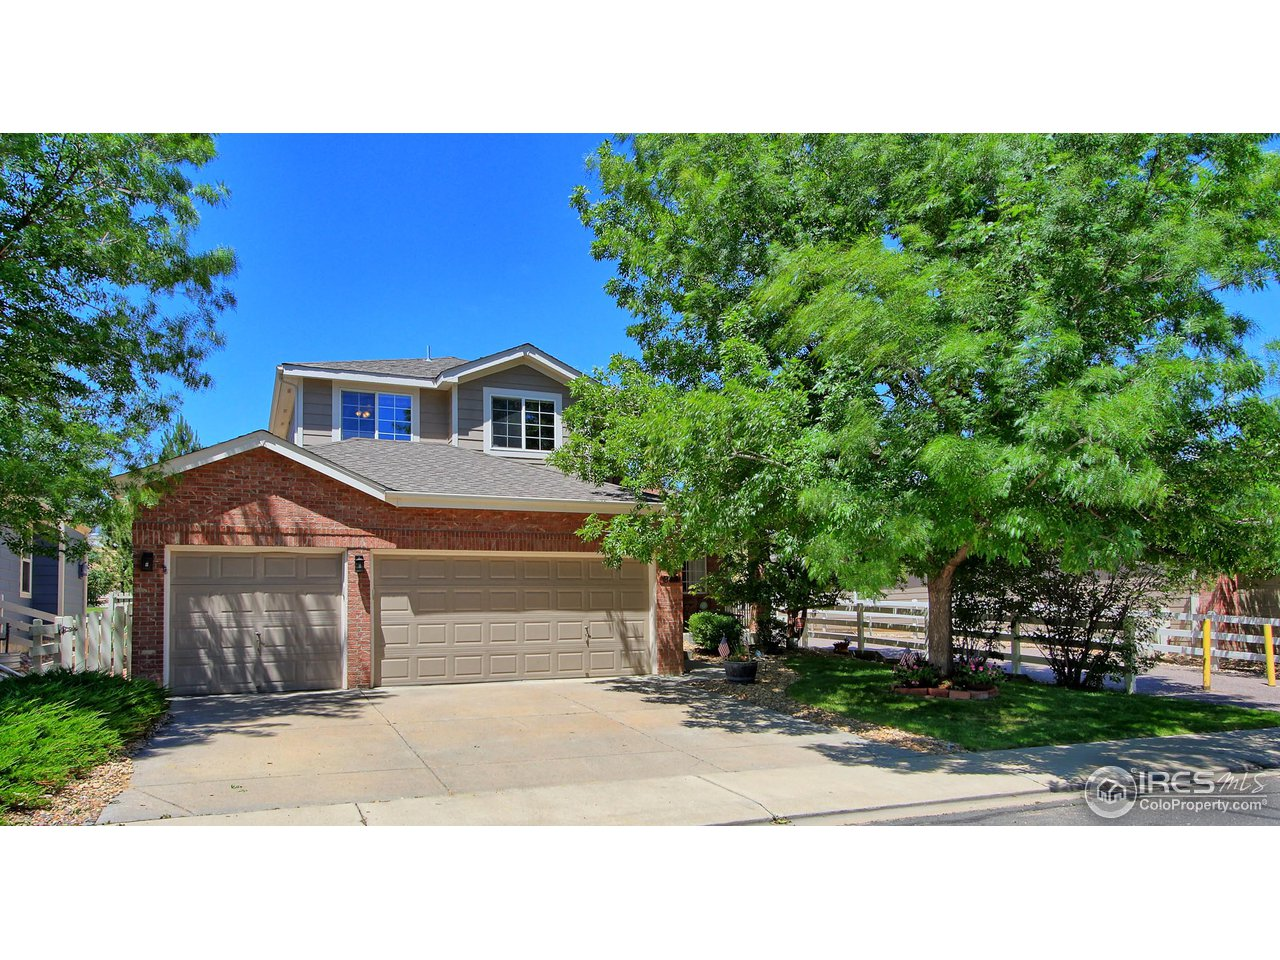 13682 Plaster Cir, Broomfield CO 80023